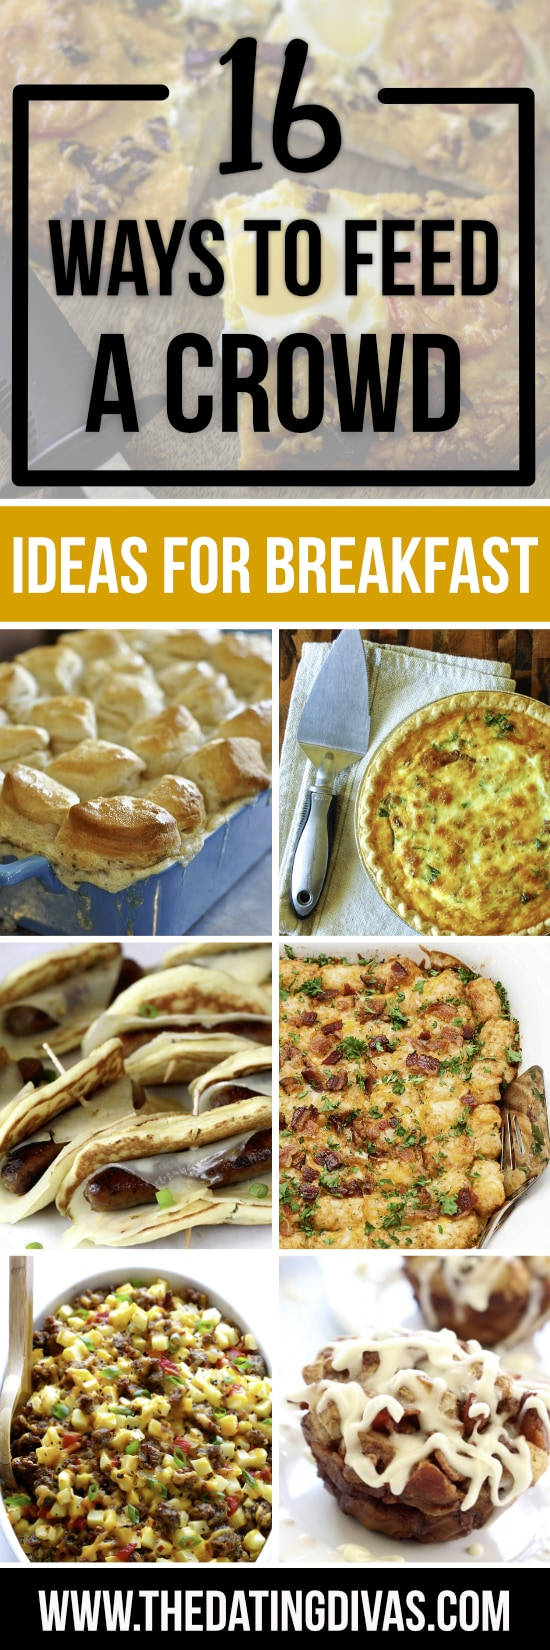 Breakfast Ideas for a Crowd